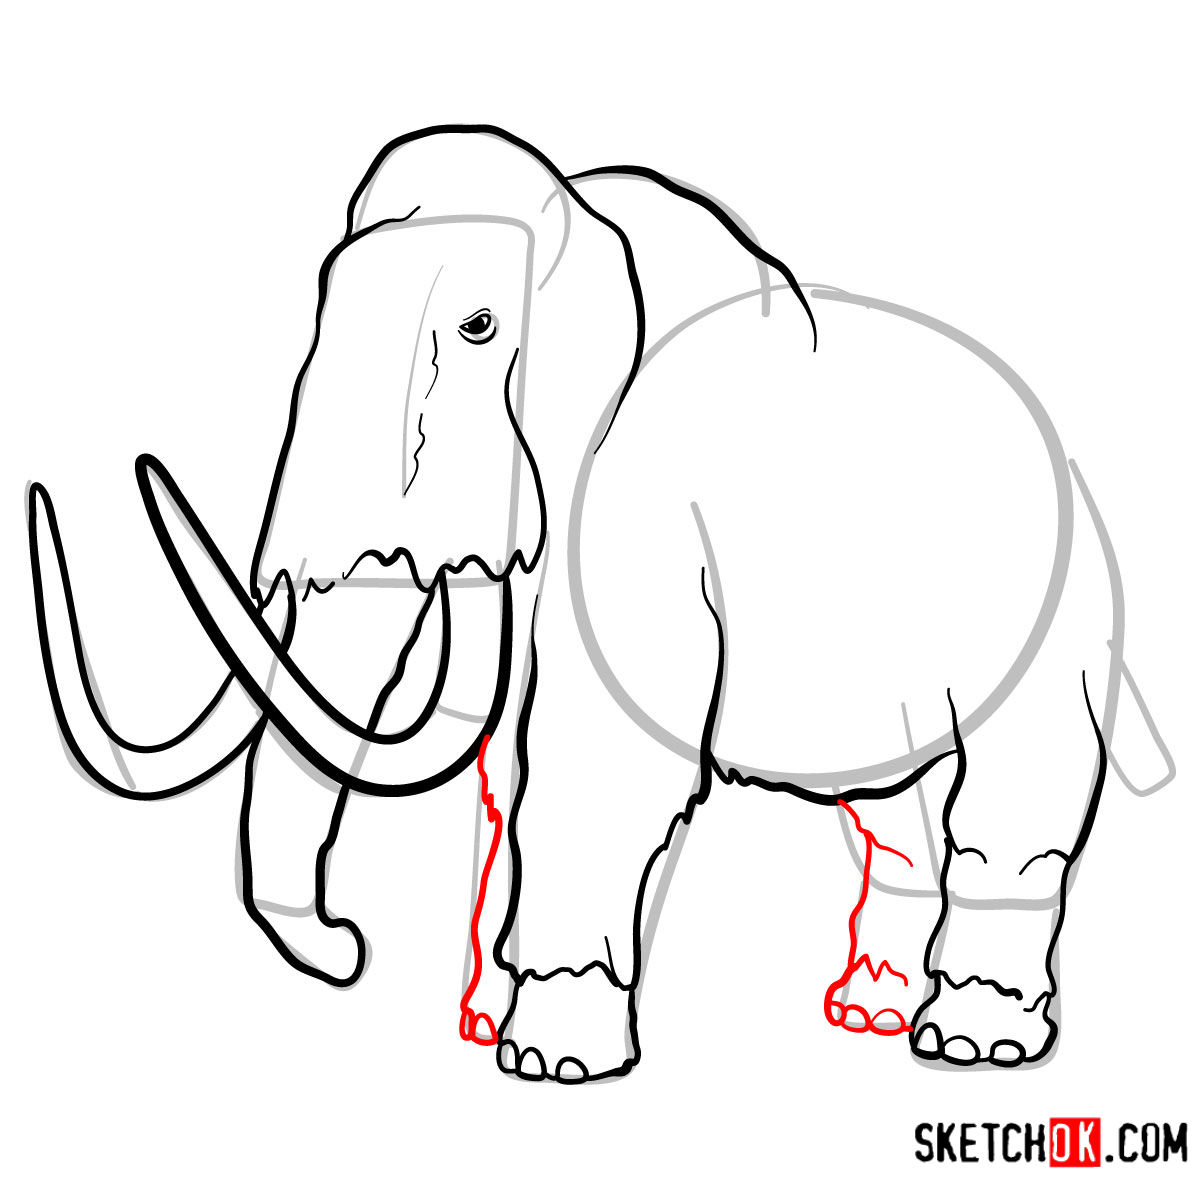 How to draw a Woolly mammoth | Extinct Animals - step 10